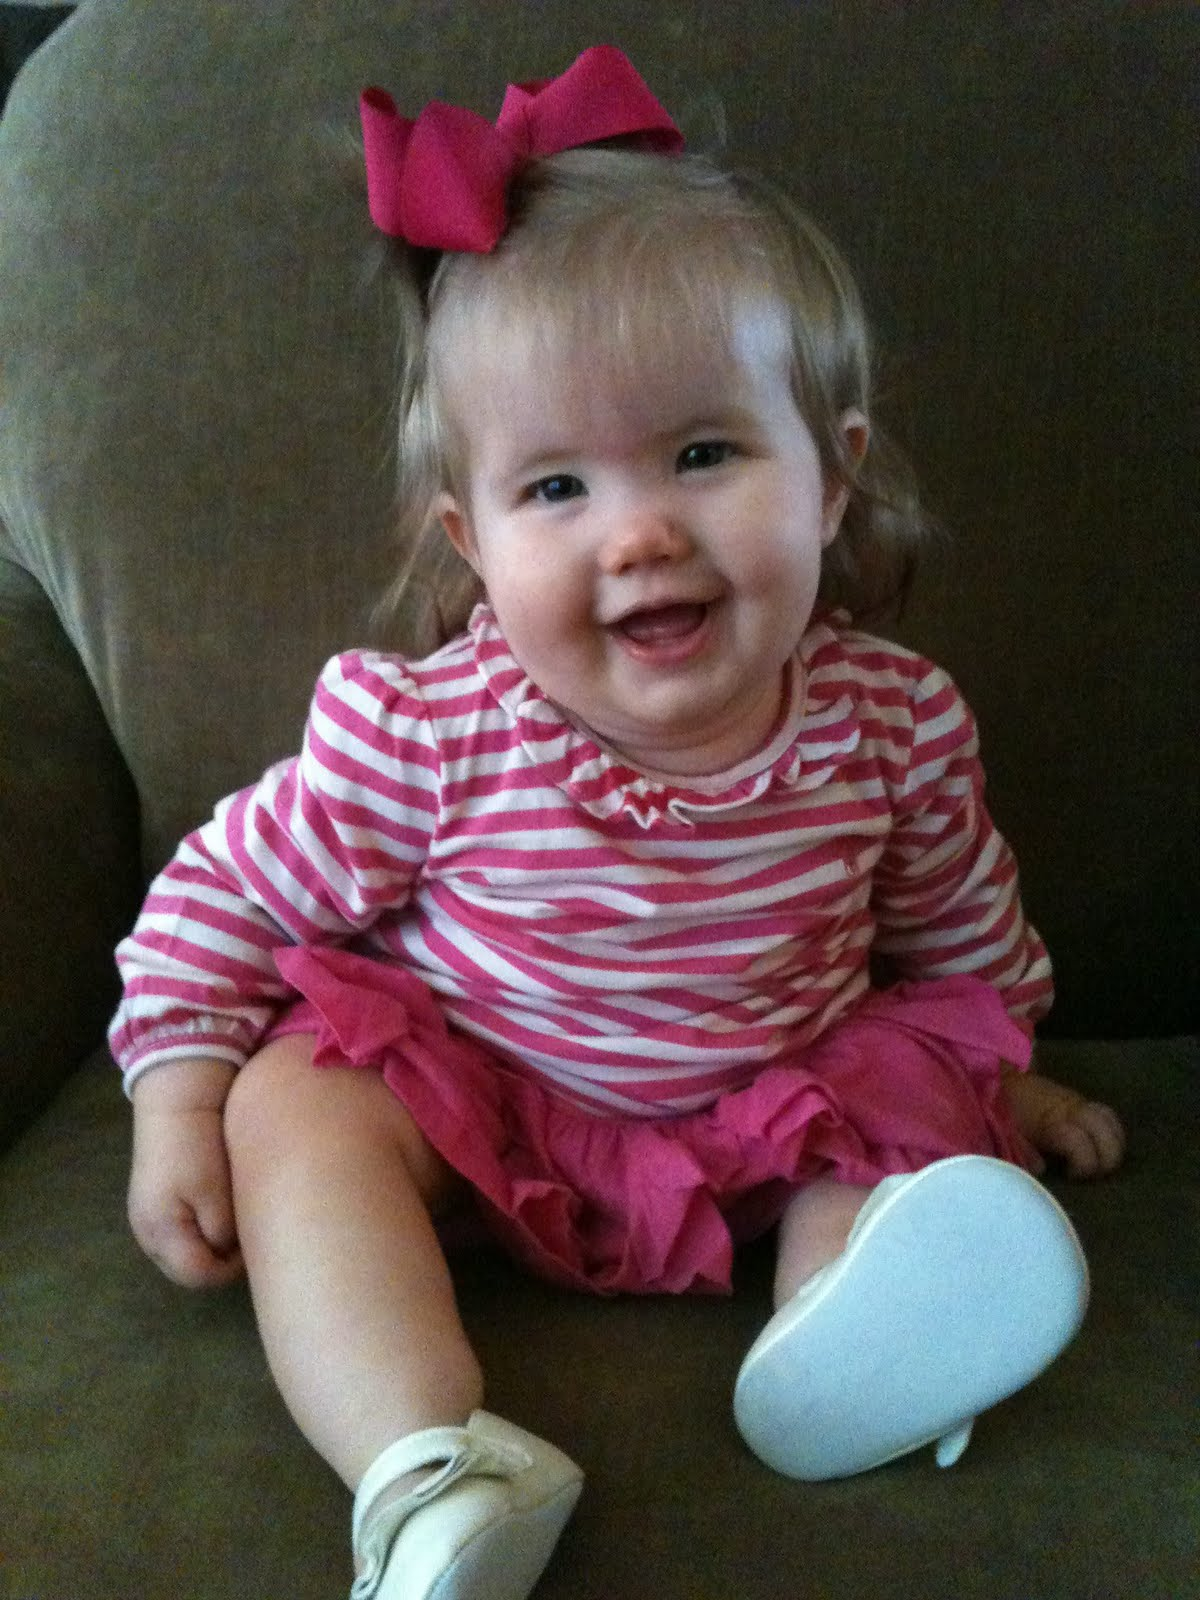 life in a nutshell: happy 9 months sweet baby girl!